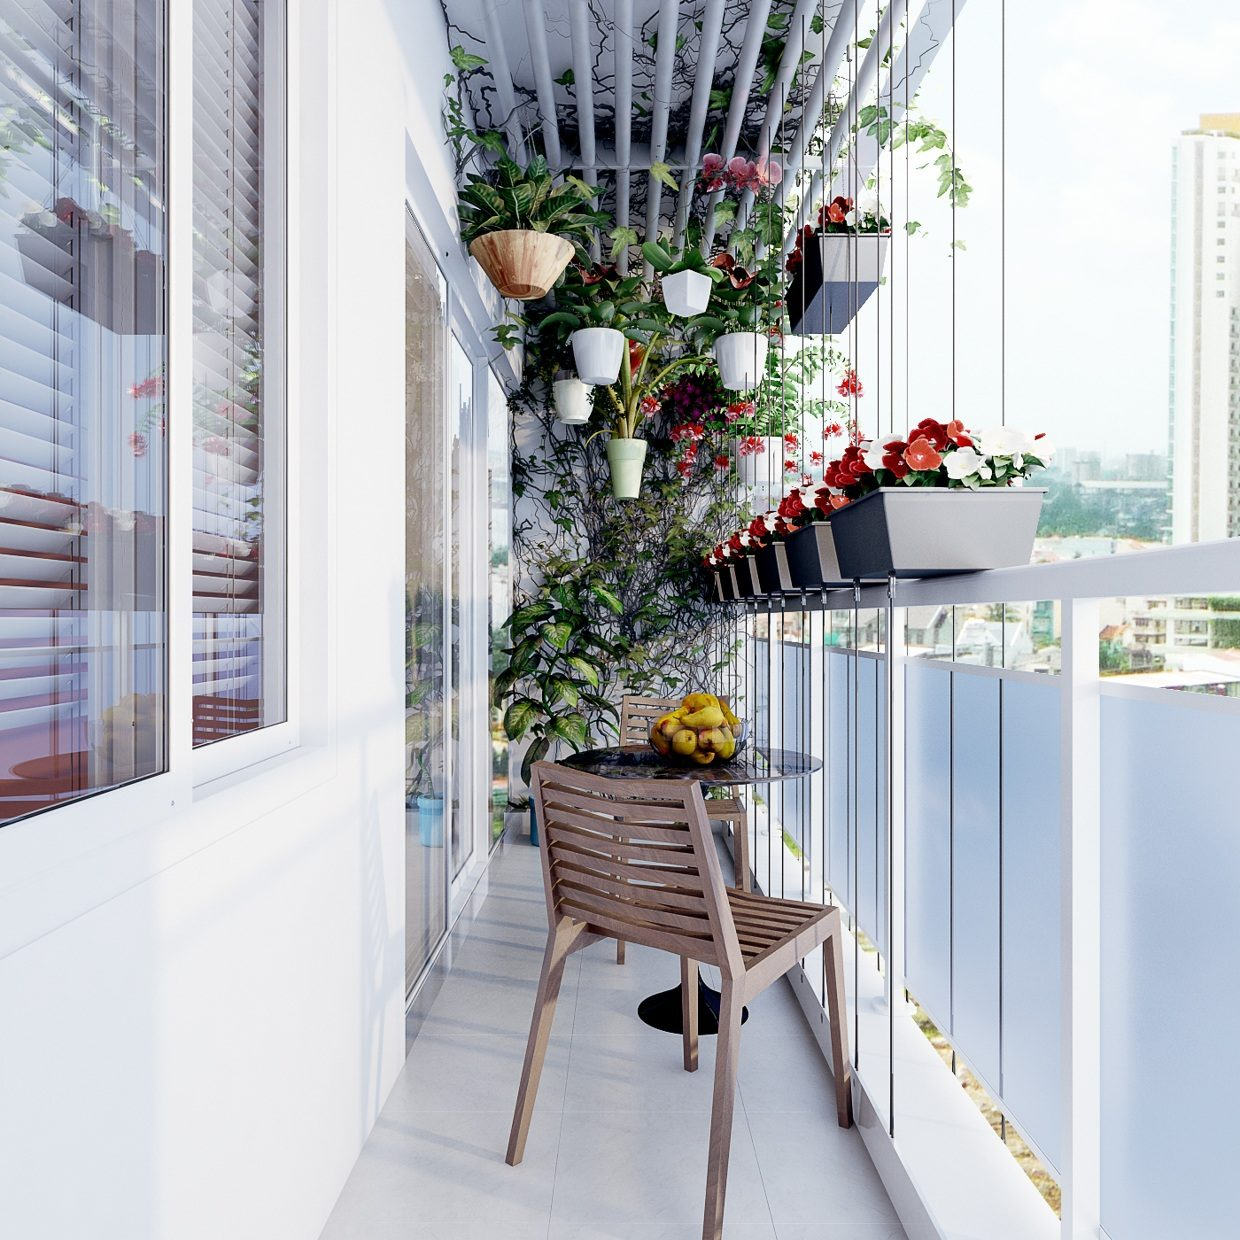 A coffee table, hanging plants up in the ceiling, and planters in the railings all arranged beautifully in a small balcony deck.